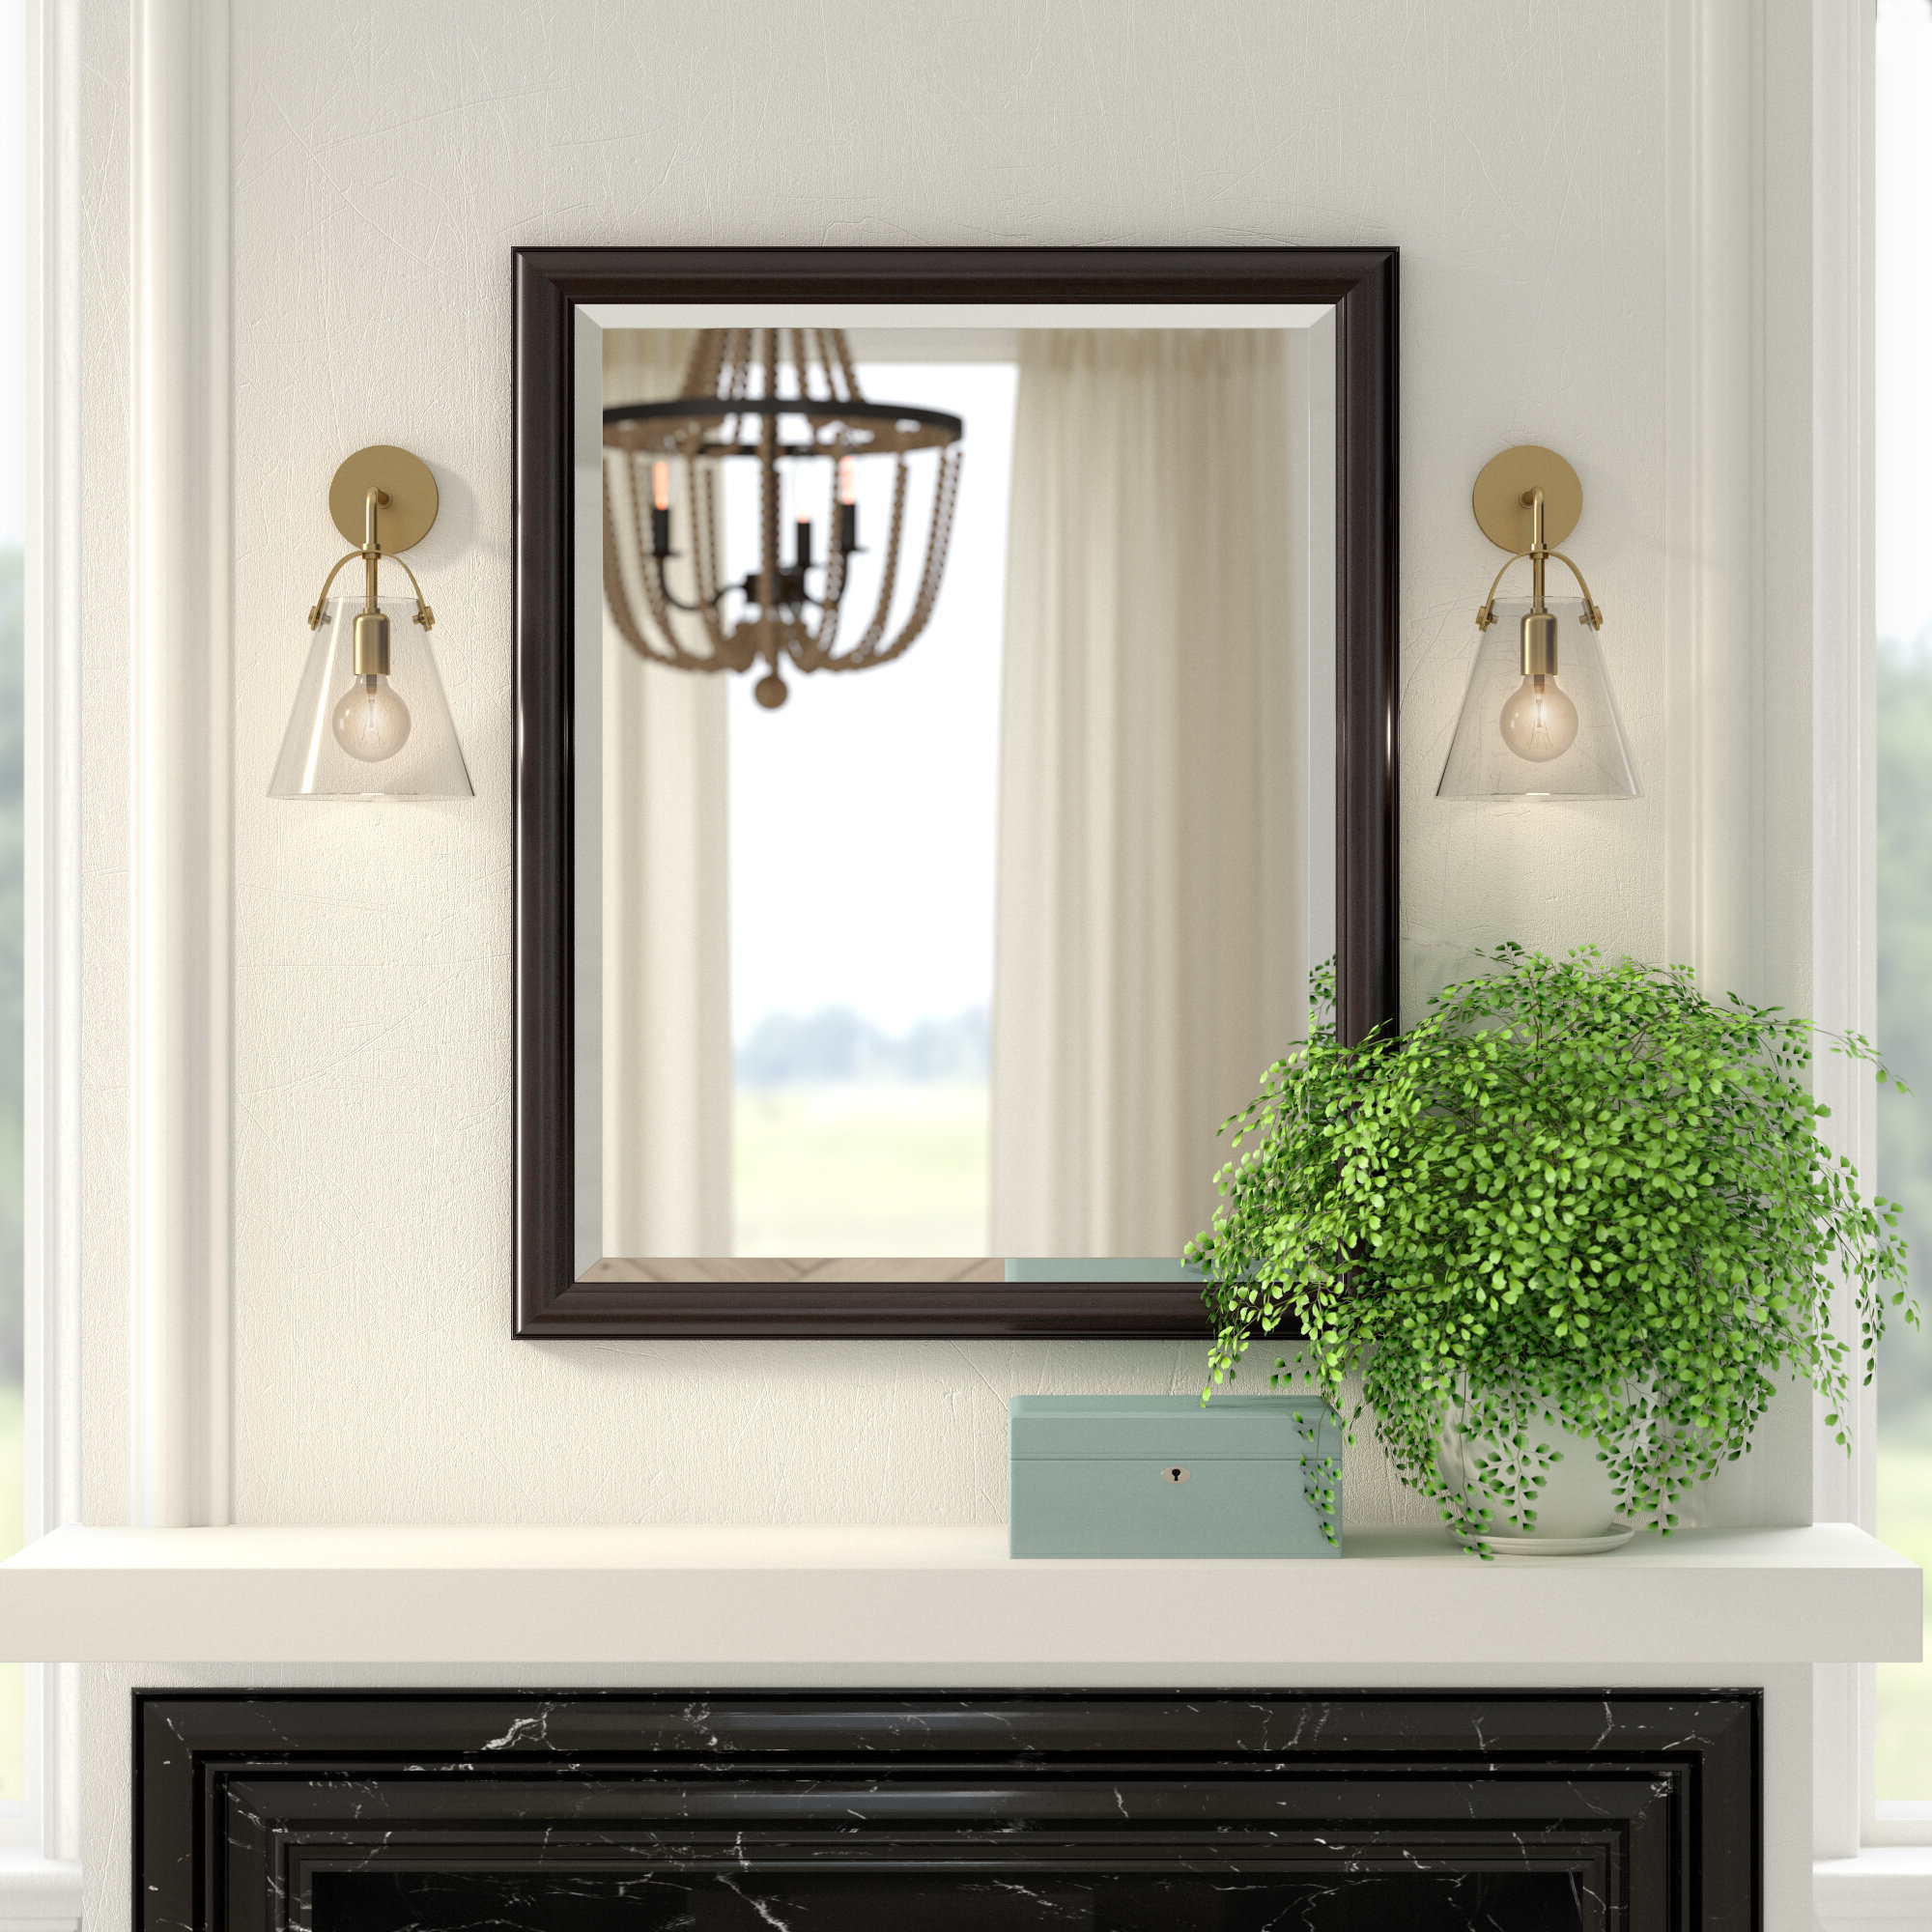 Framed Beveled Wall Mirror Throughout Famous Living Room Wall Mirrors (View 17 of 20)